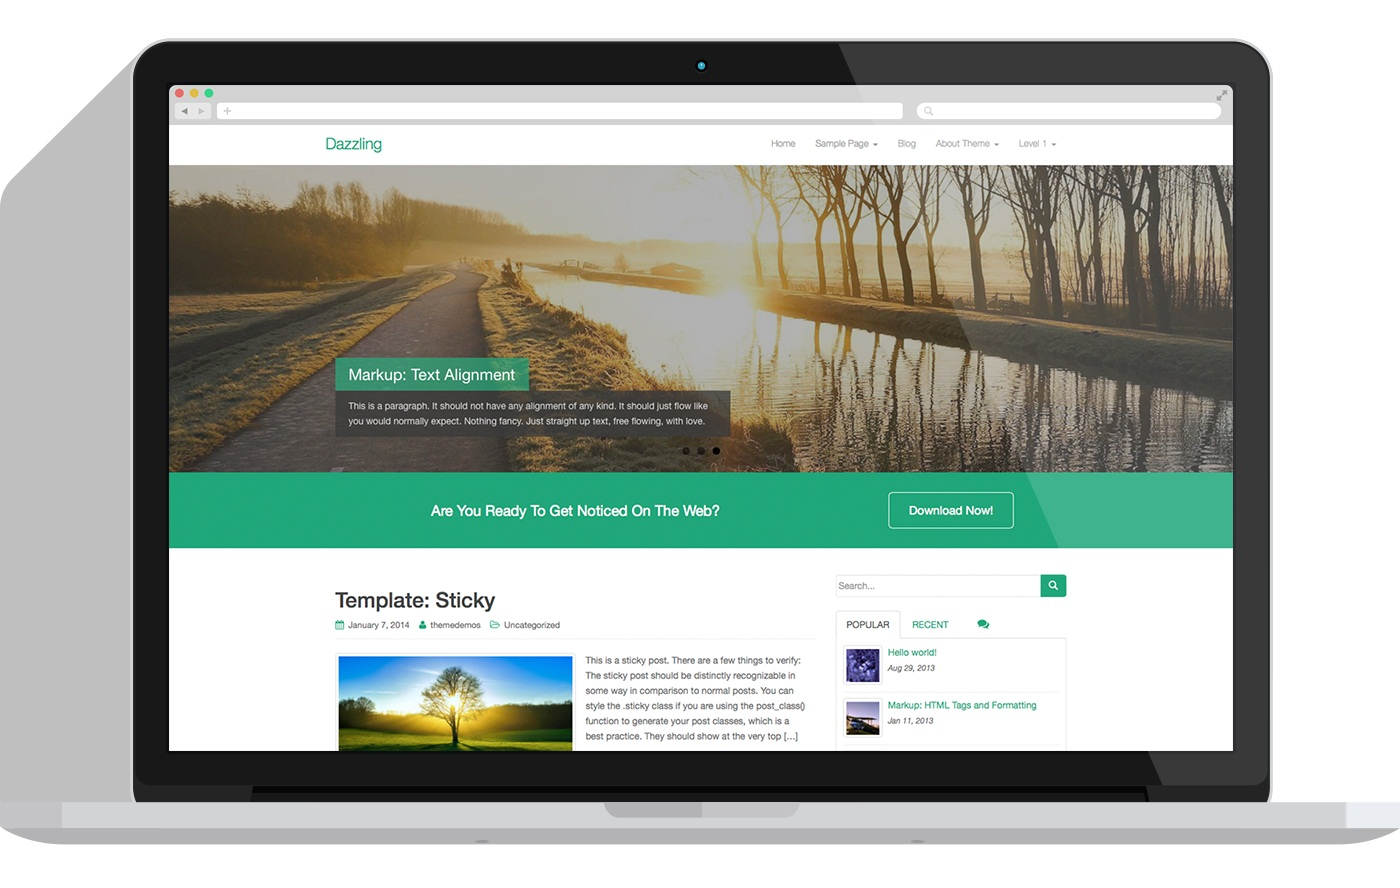 Dazzling-wordpress-theme